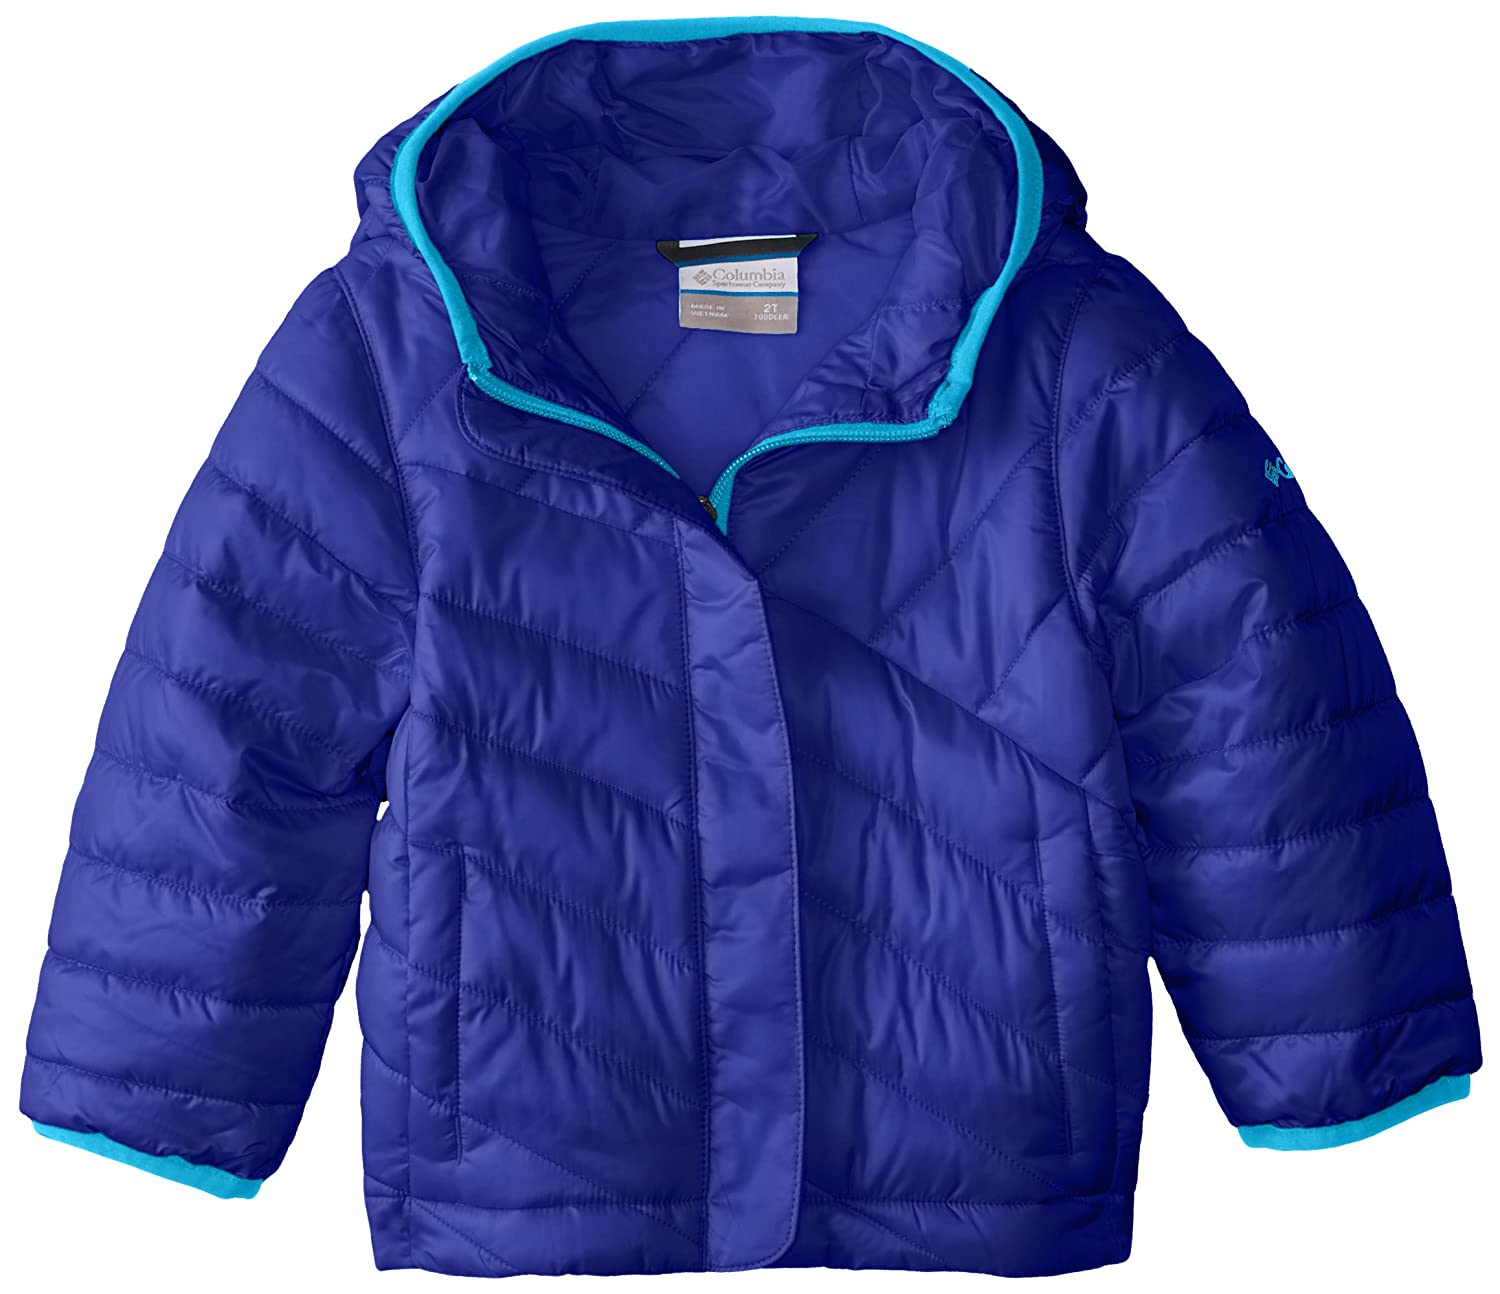 Columbia Girls' Powder Lite Puffer Jacket Columbia Sportswear 1523611